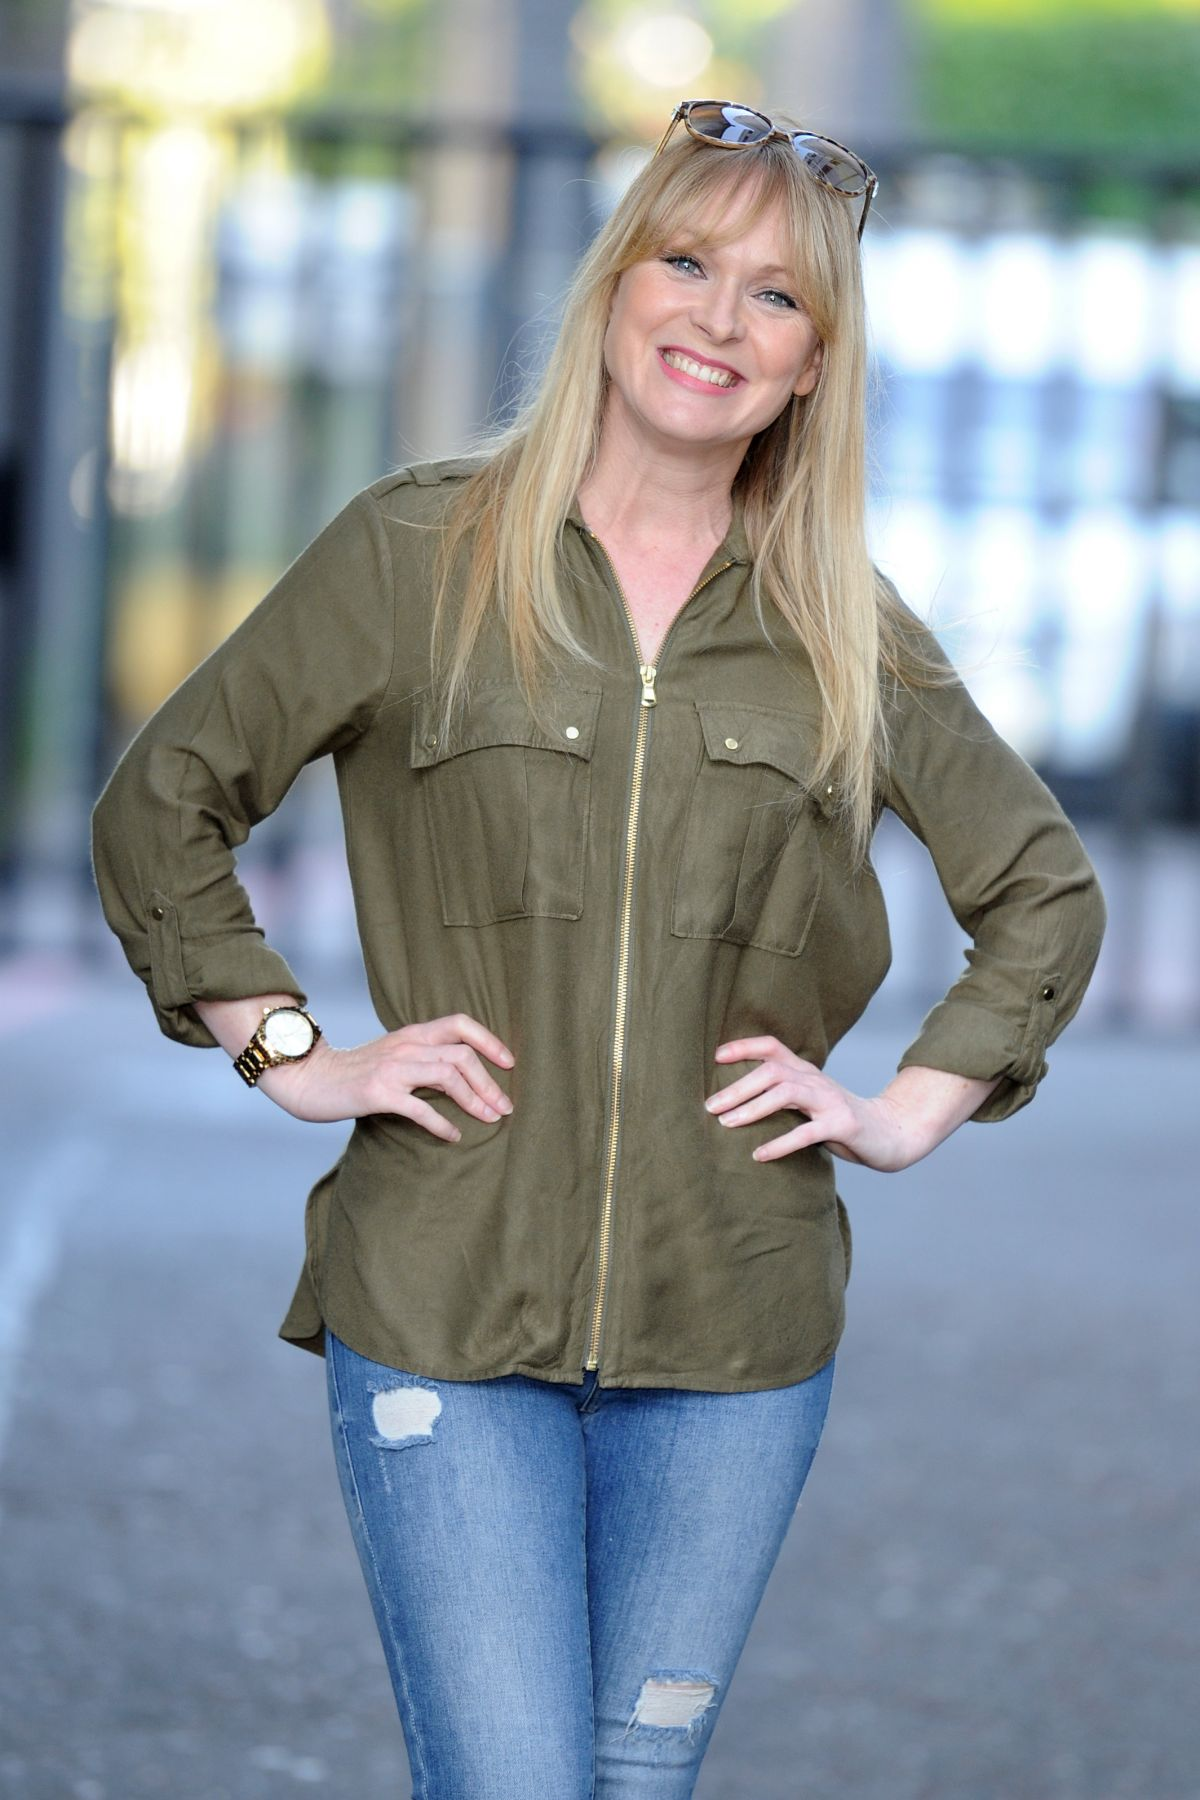 MICHELLE HARDWICK at ITV Studios in London 08/24/2016